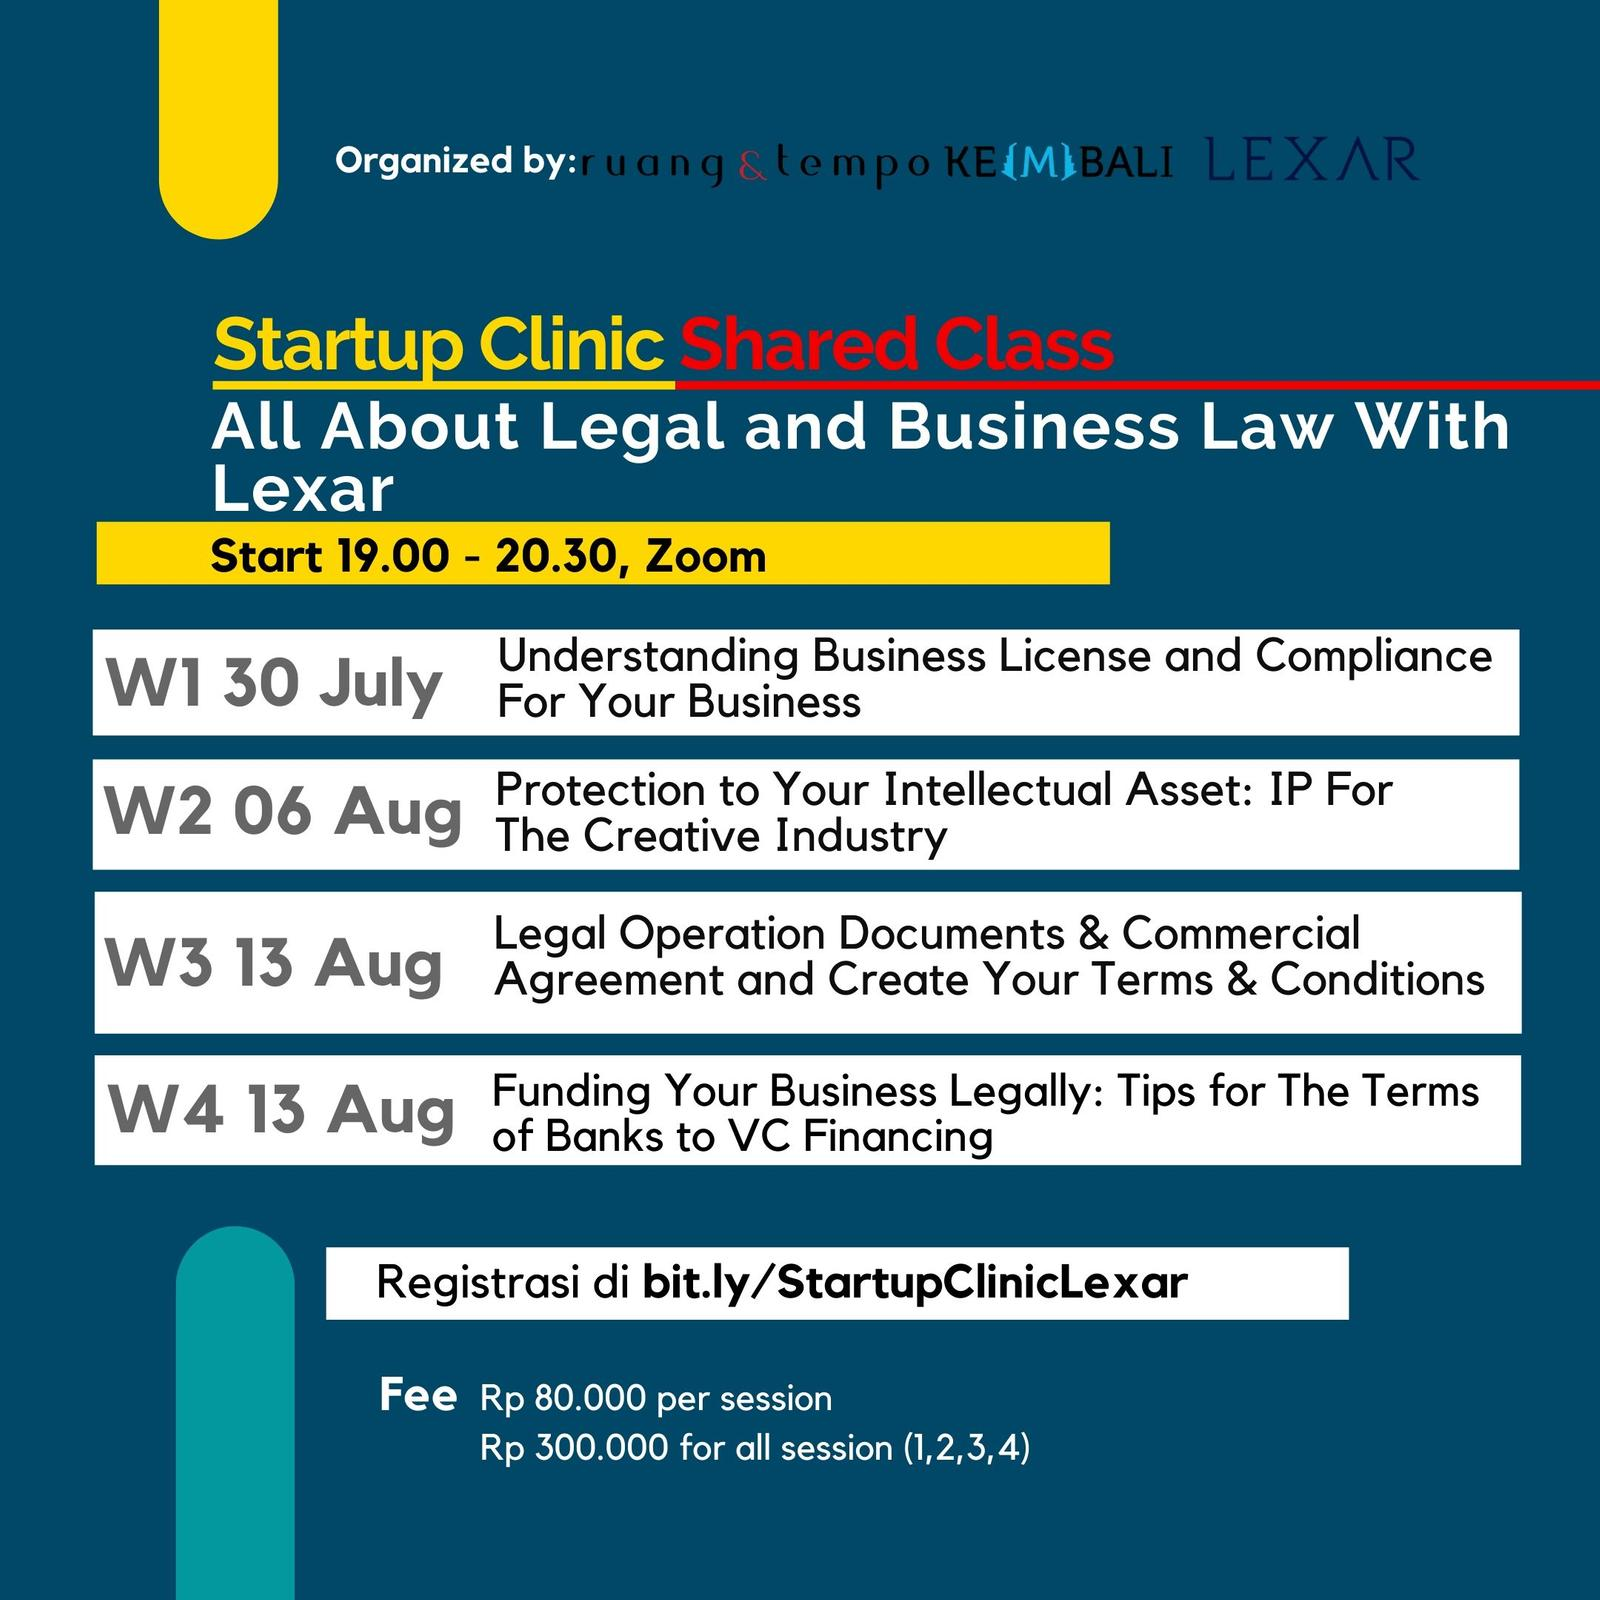 Startup Clinic: All About Legal and Business Law with Lexar